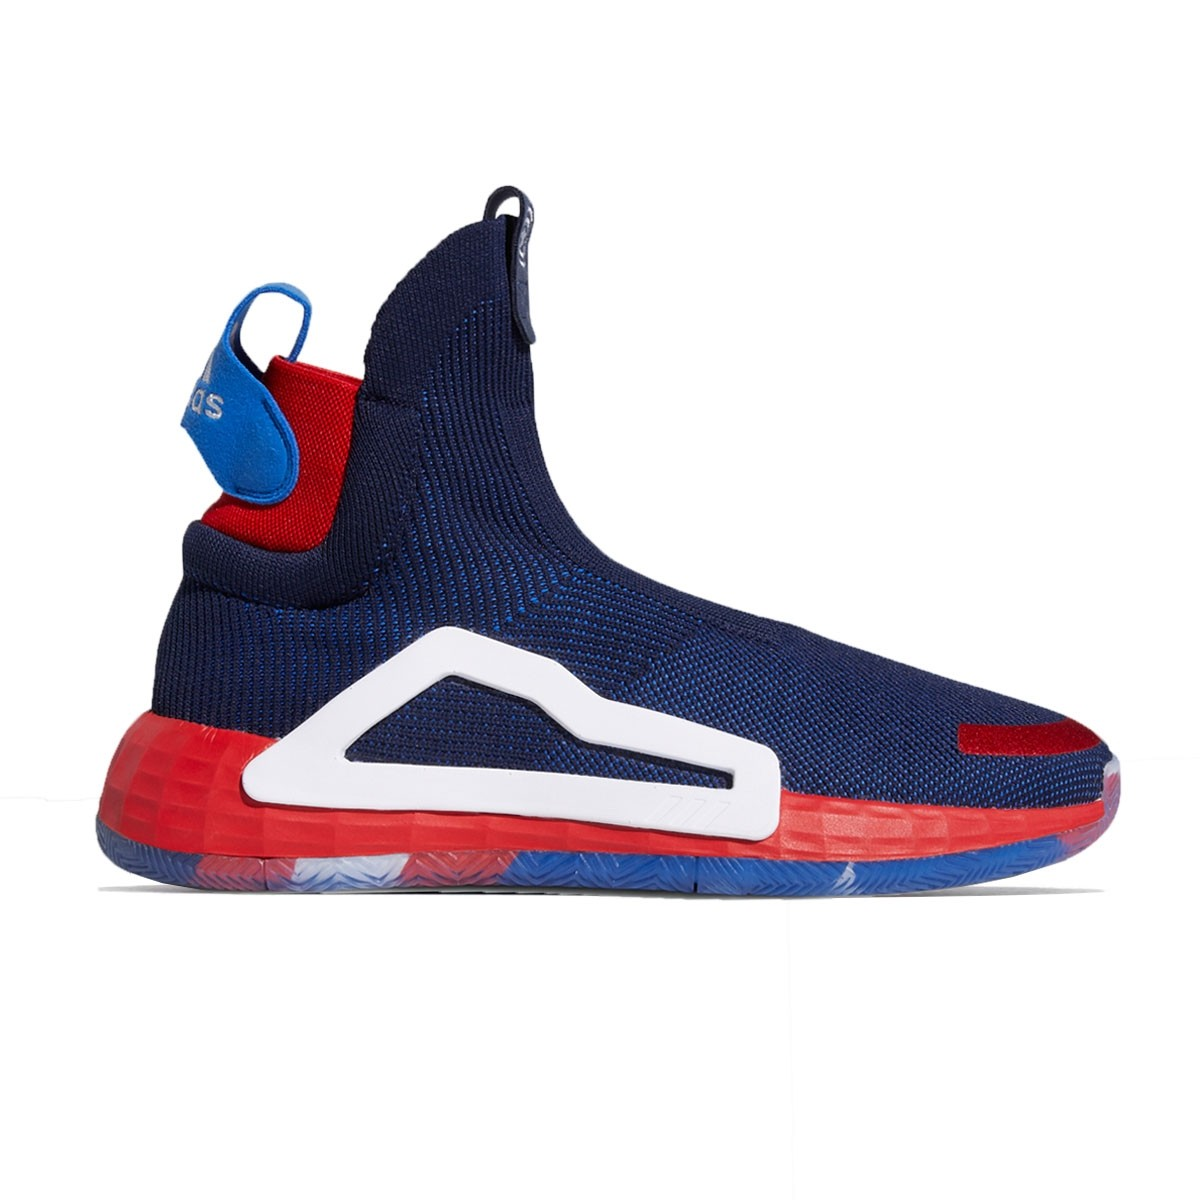 newest af6b9 7a766 Buy ADIDAS Next Level  Captain America  Basketball shoes   sneakers